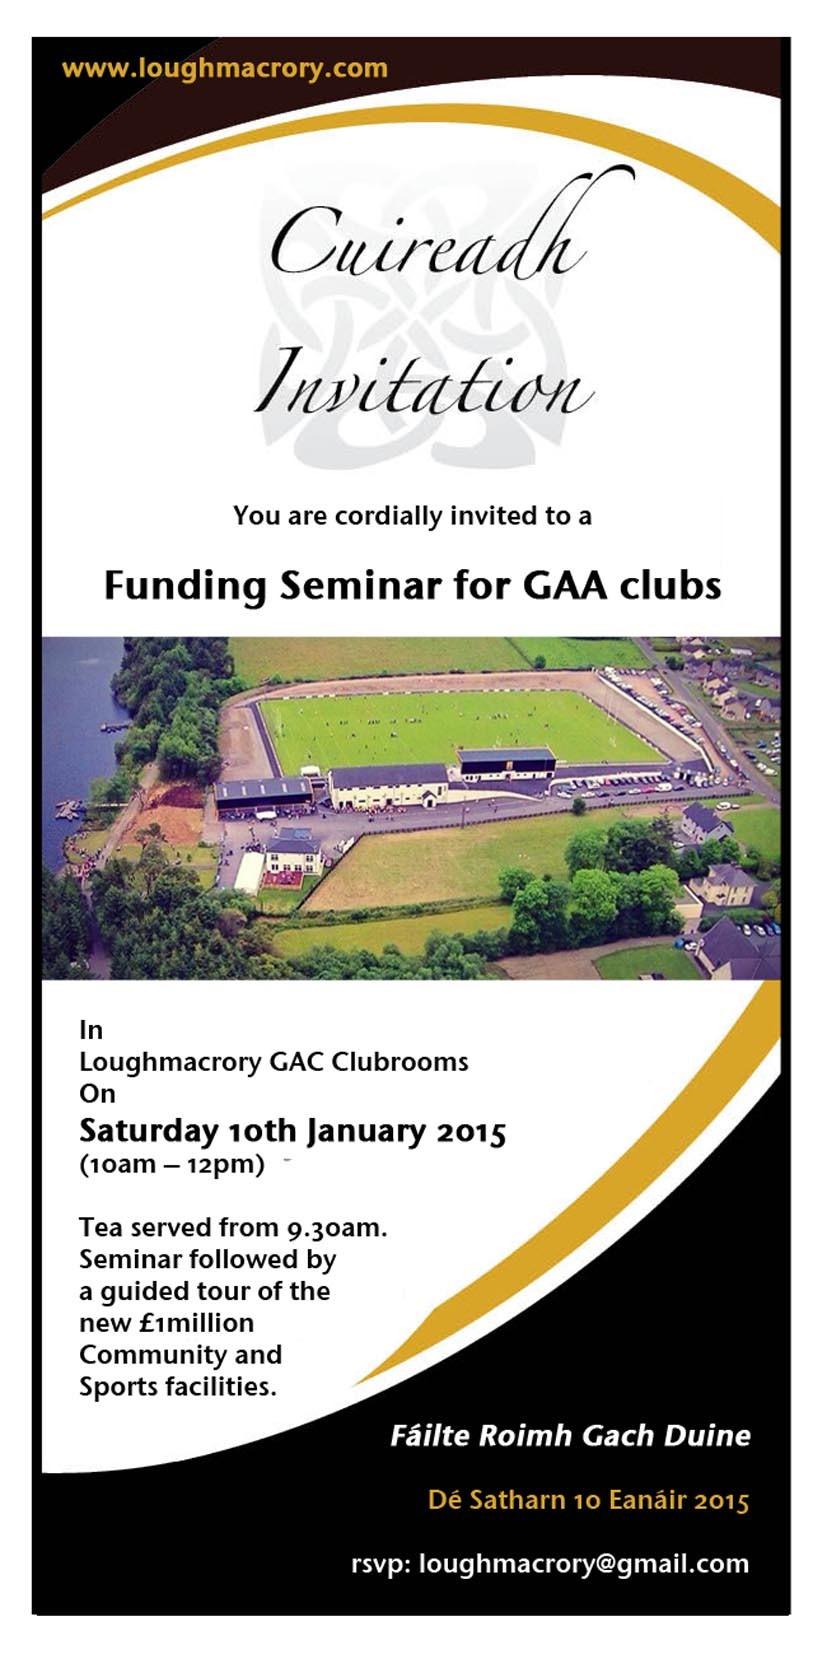 Funding Seminar for GAA Clubs – Loughmacrory – Saturday 10th January